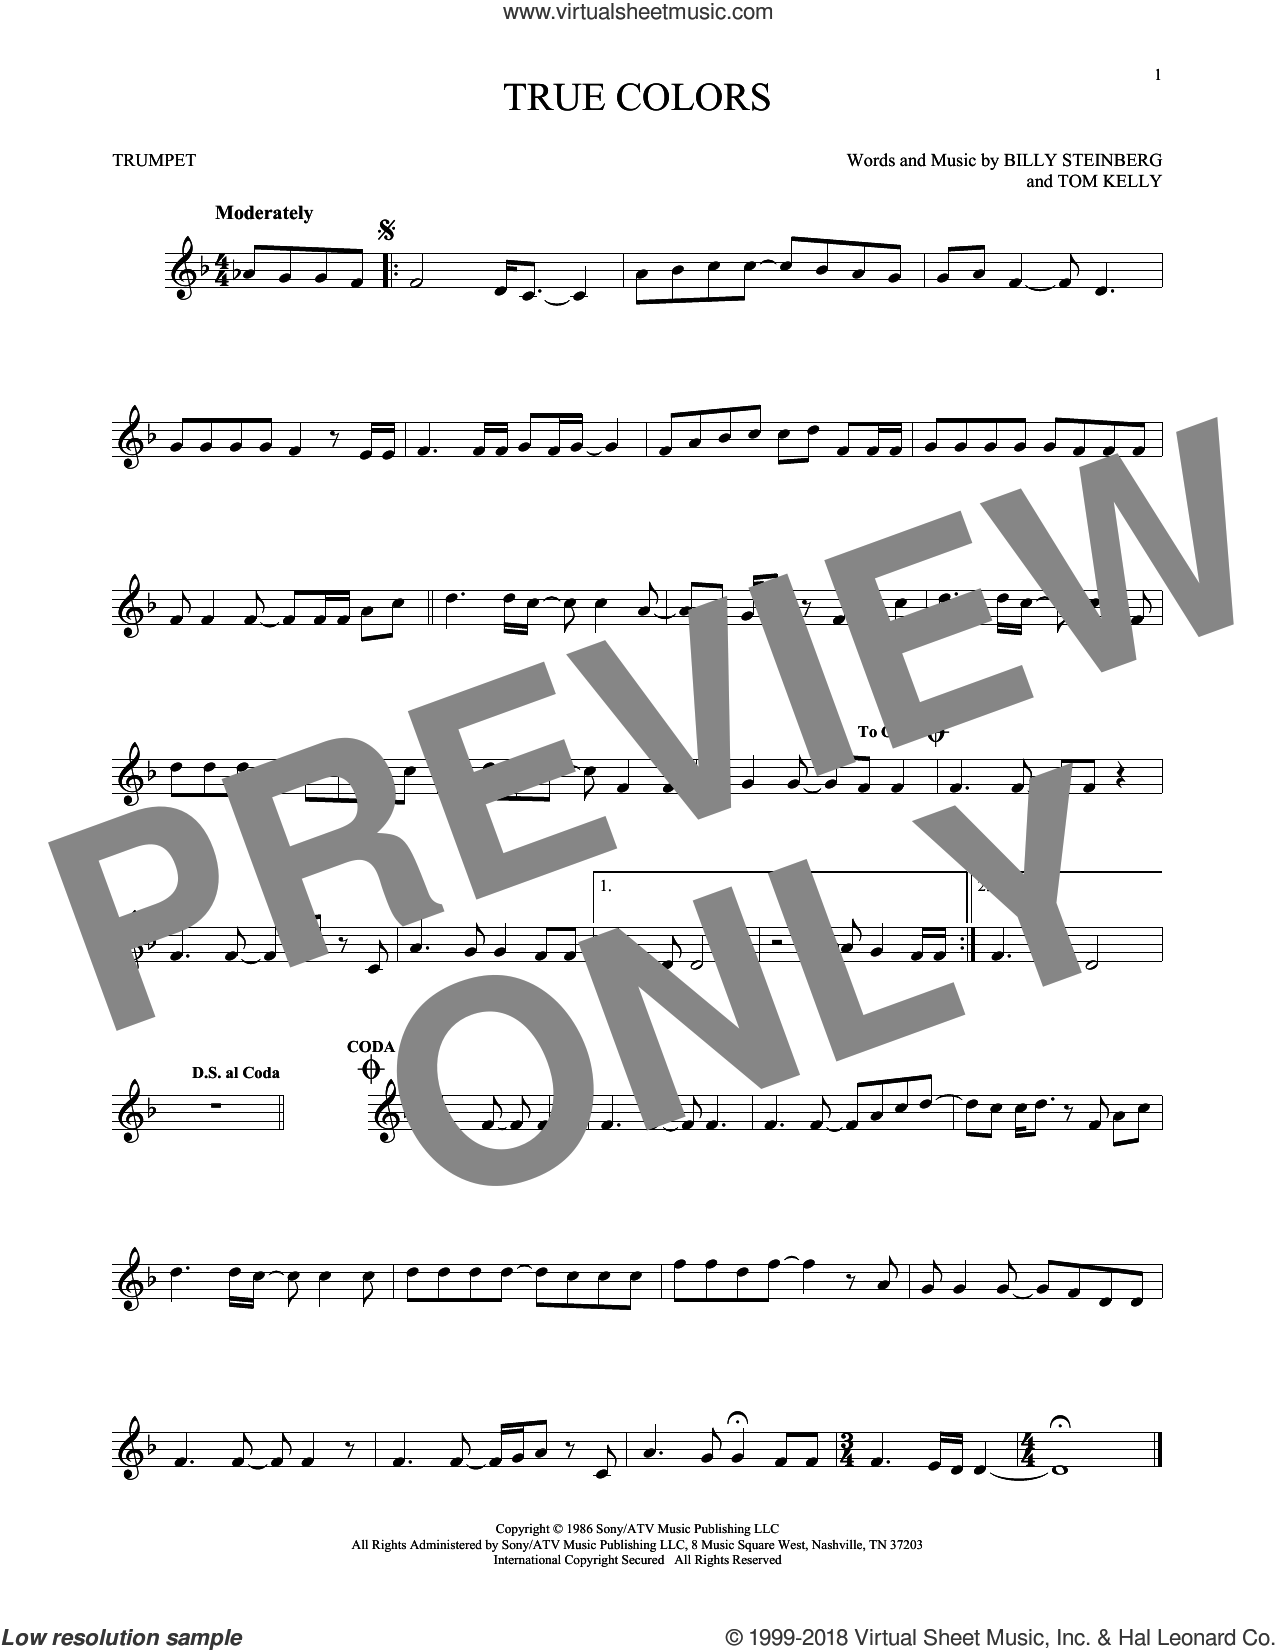 True Colors sheet music for trumpet solo by Cyndi Lauper, Billy Steinberg and Tom Kelly, intermediate